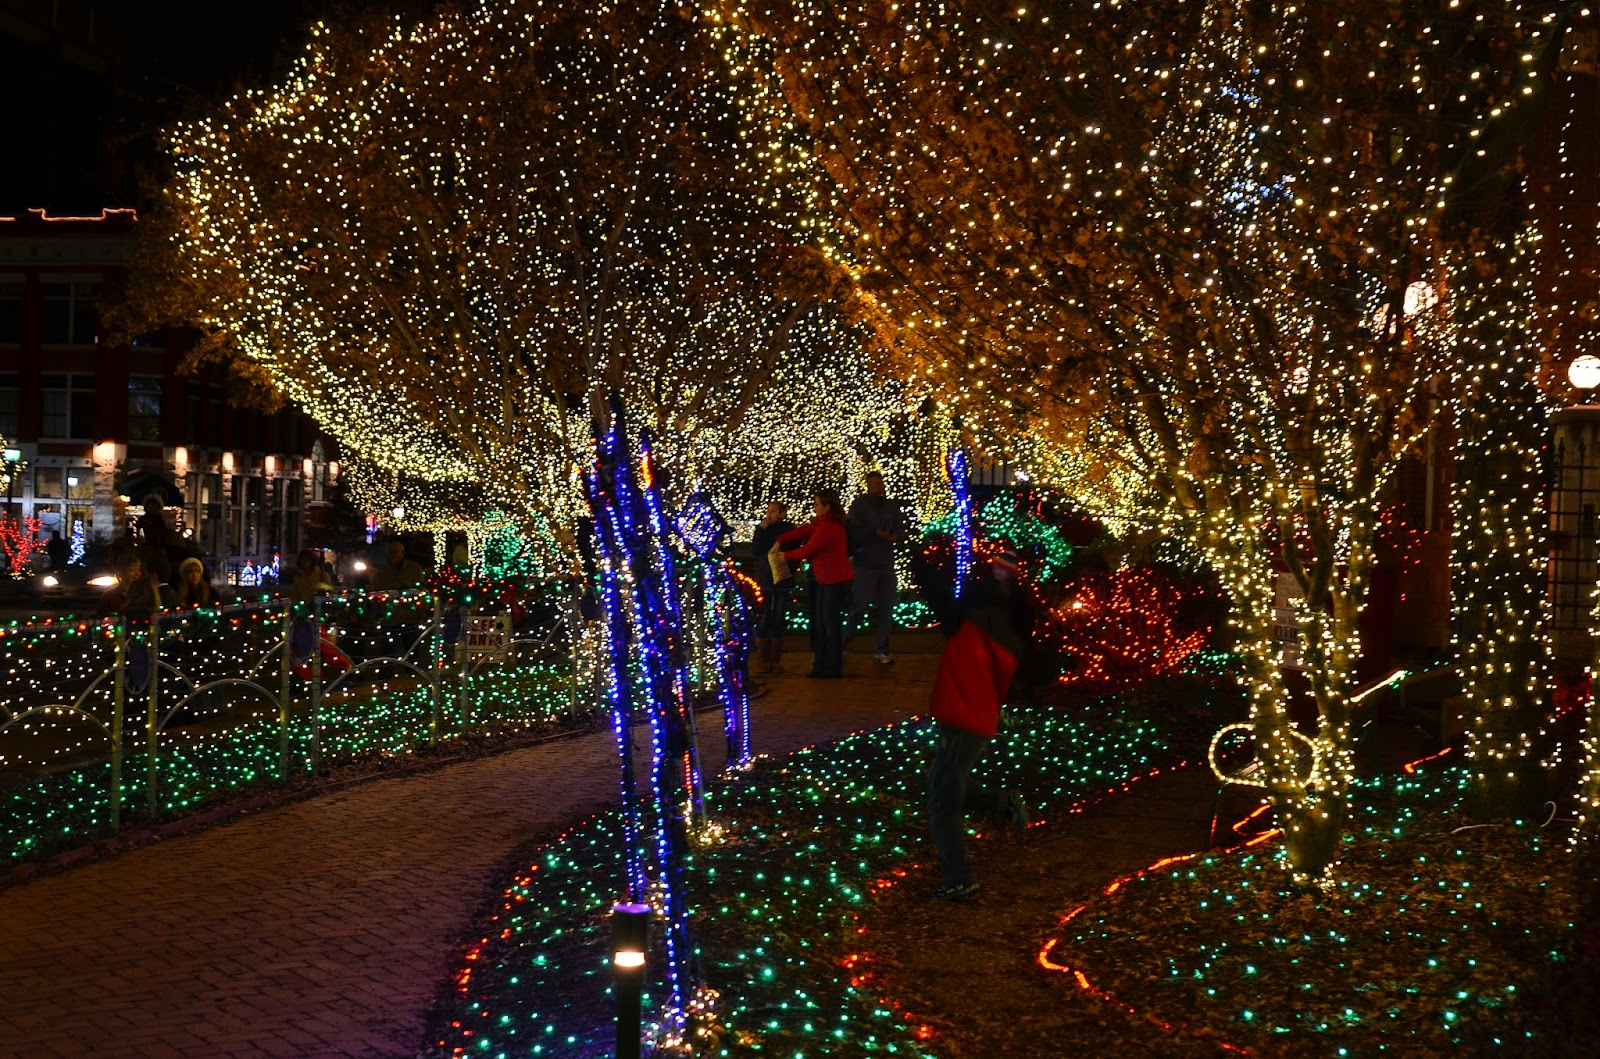 i had read about a huge private light display in fayetteville that you could walk through